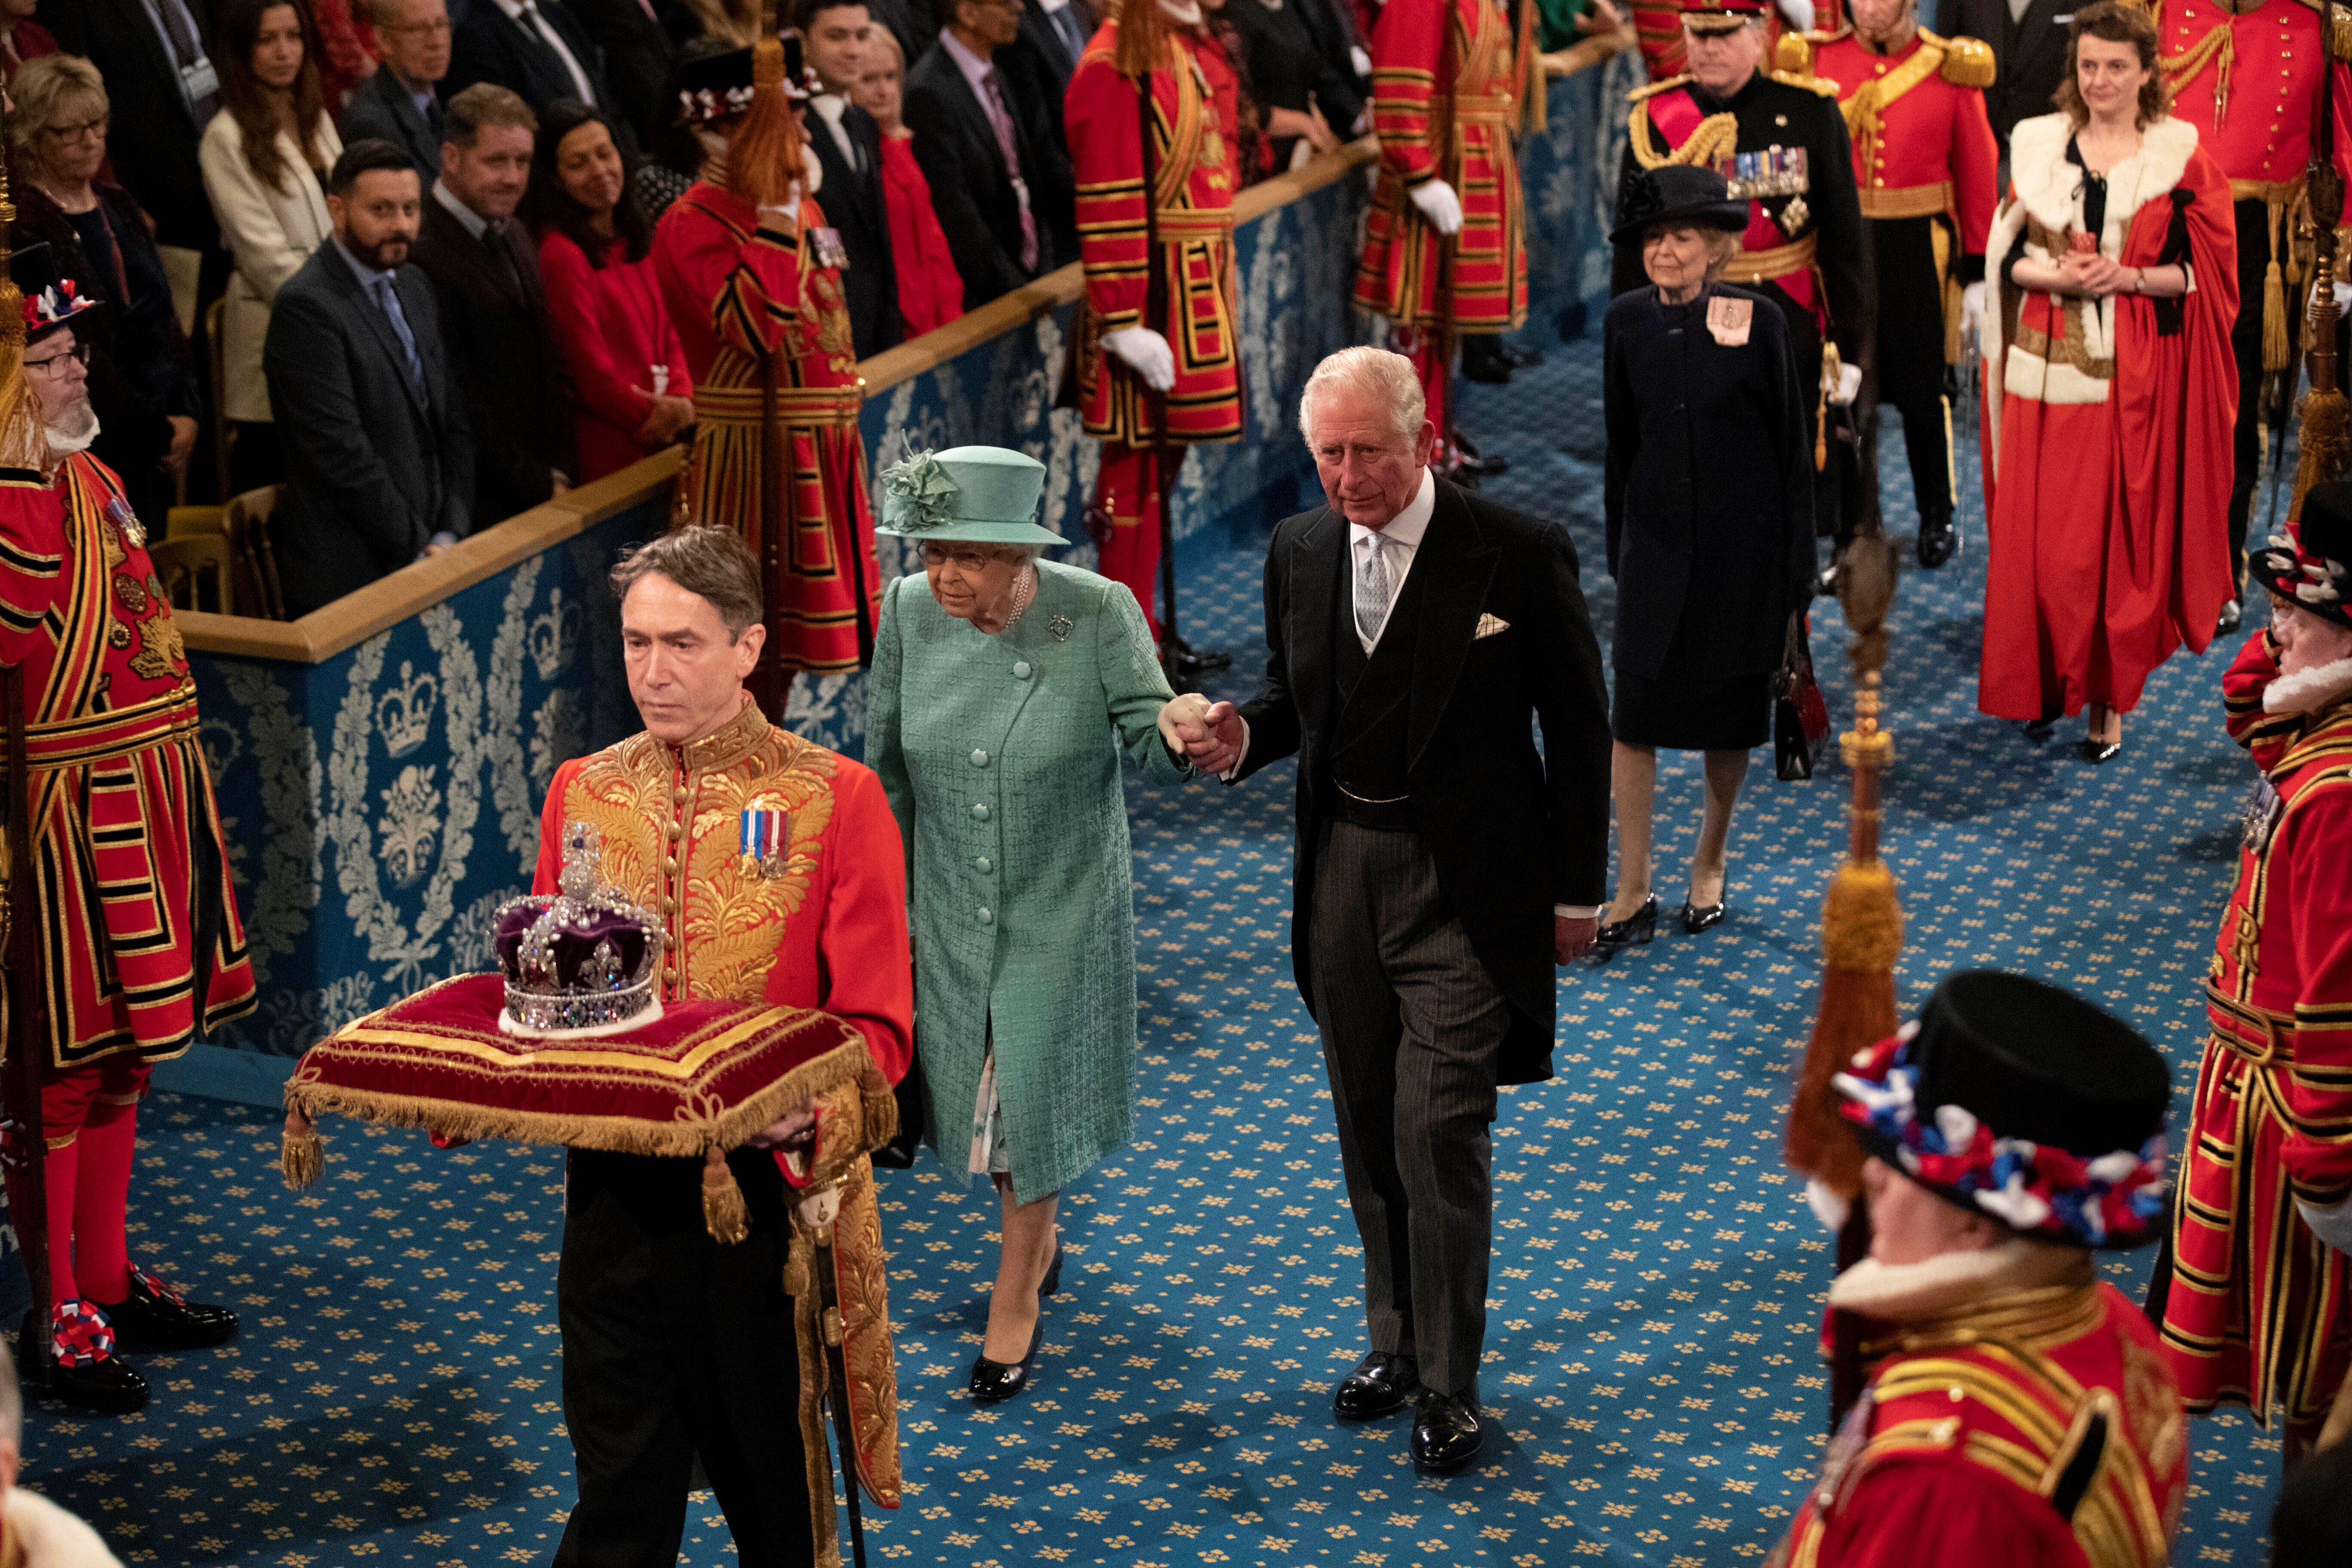 oday's #StateOpening was the 66th occasion that The Queen has opened Parliament.